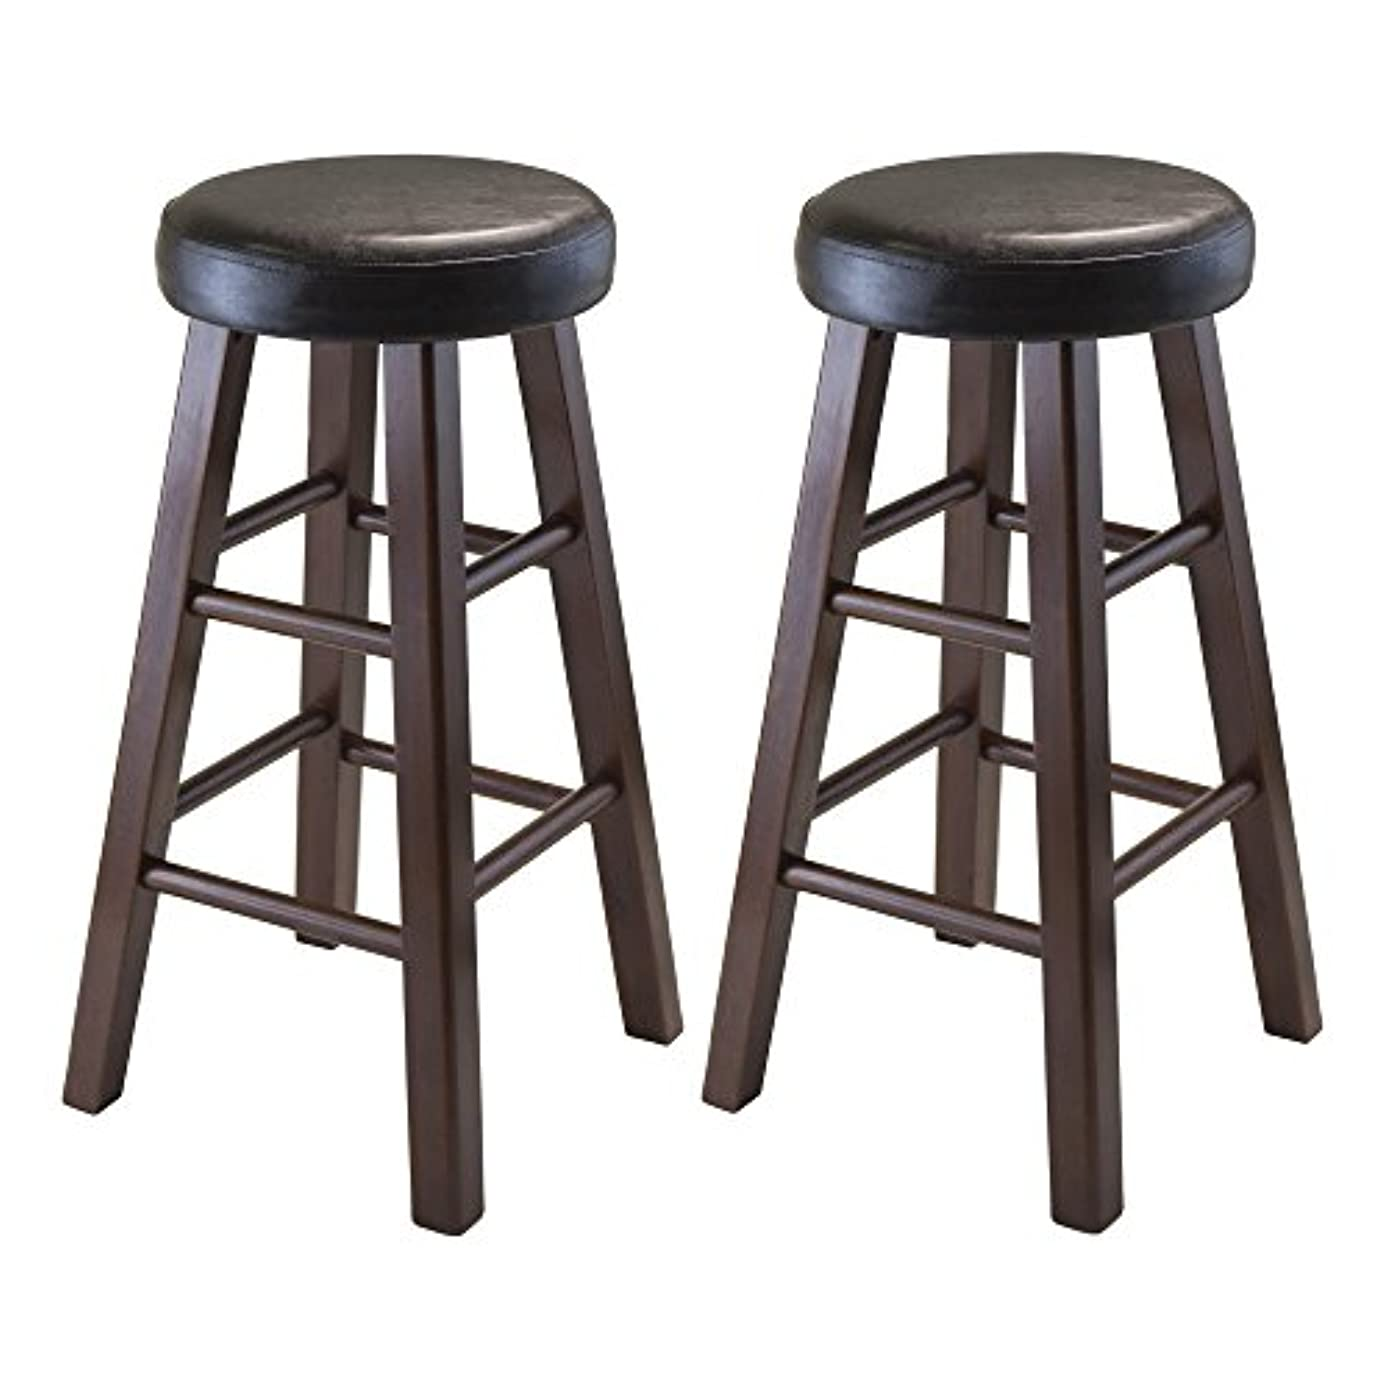 Winsome Wood Marta Assembled Round Counter Stool with PU Leather Cushion Seat, Square Legs, 25.4-Inch, Set of 2